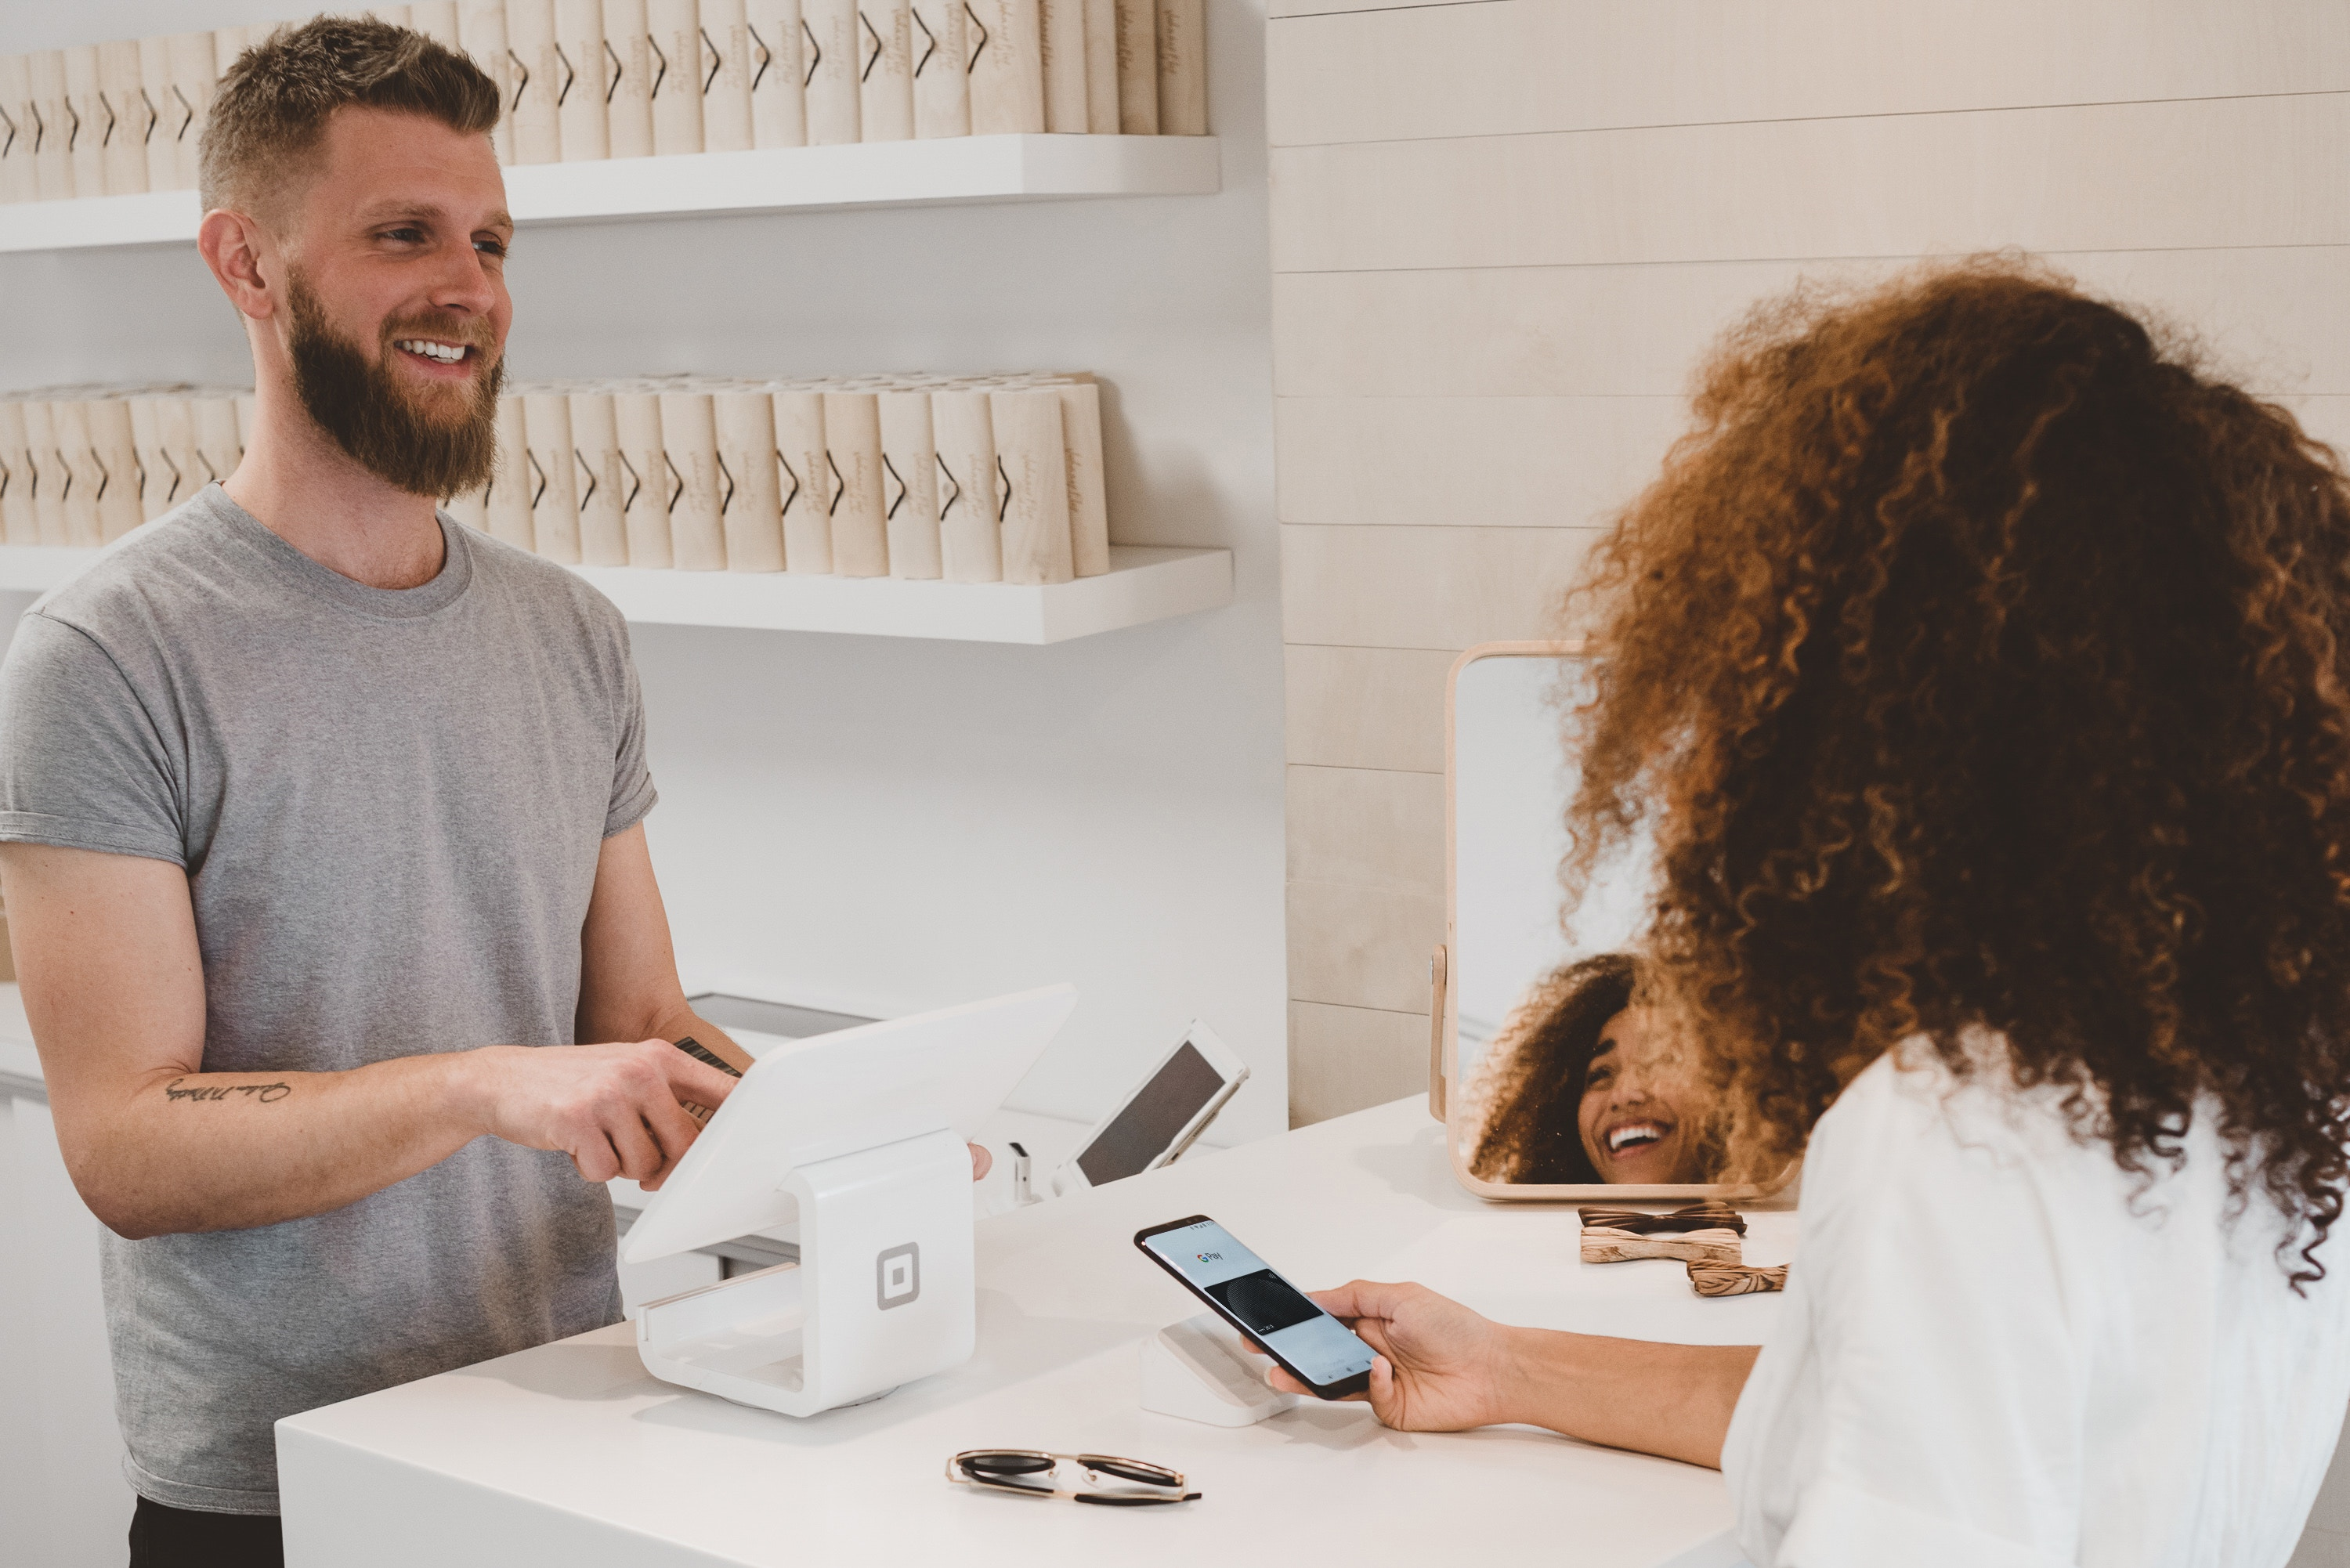 POS for Better Customer Experiences